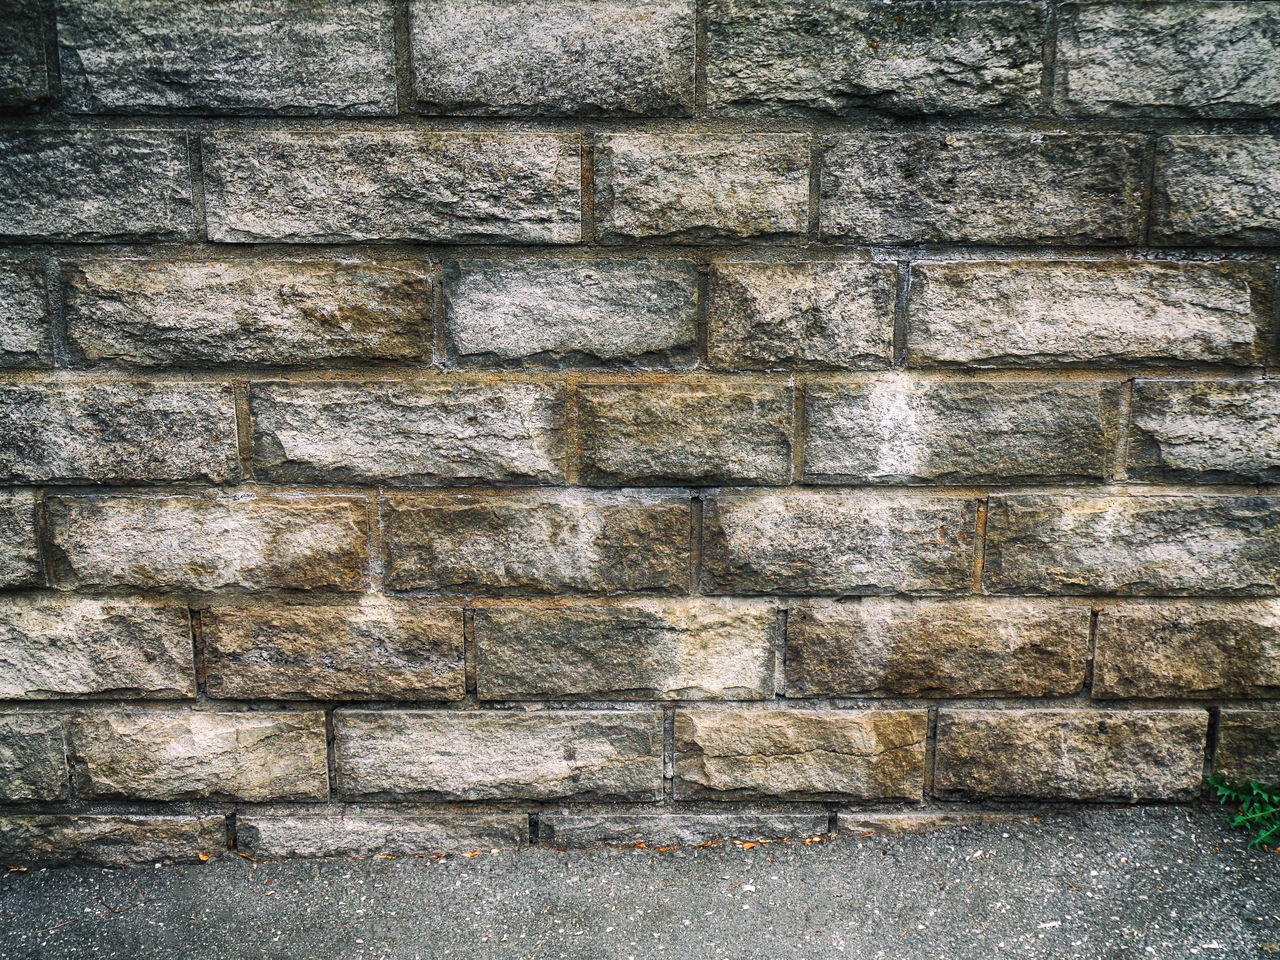 wall - building feature, wall, built structure, architecture, pattern, backgrounds, no people, textured, day, brick, brick wall, full frame, stone wall, rough, solid, outdoors, building exterior, weathered, close-up, old, concrete